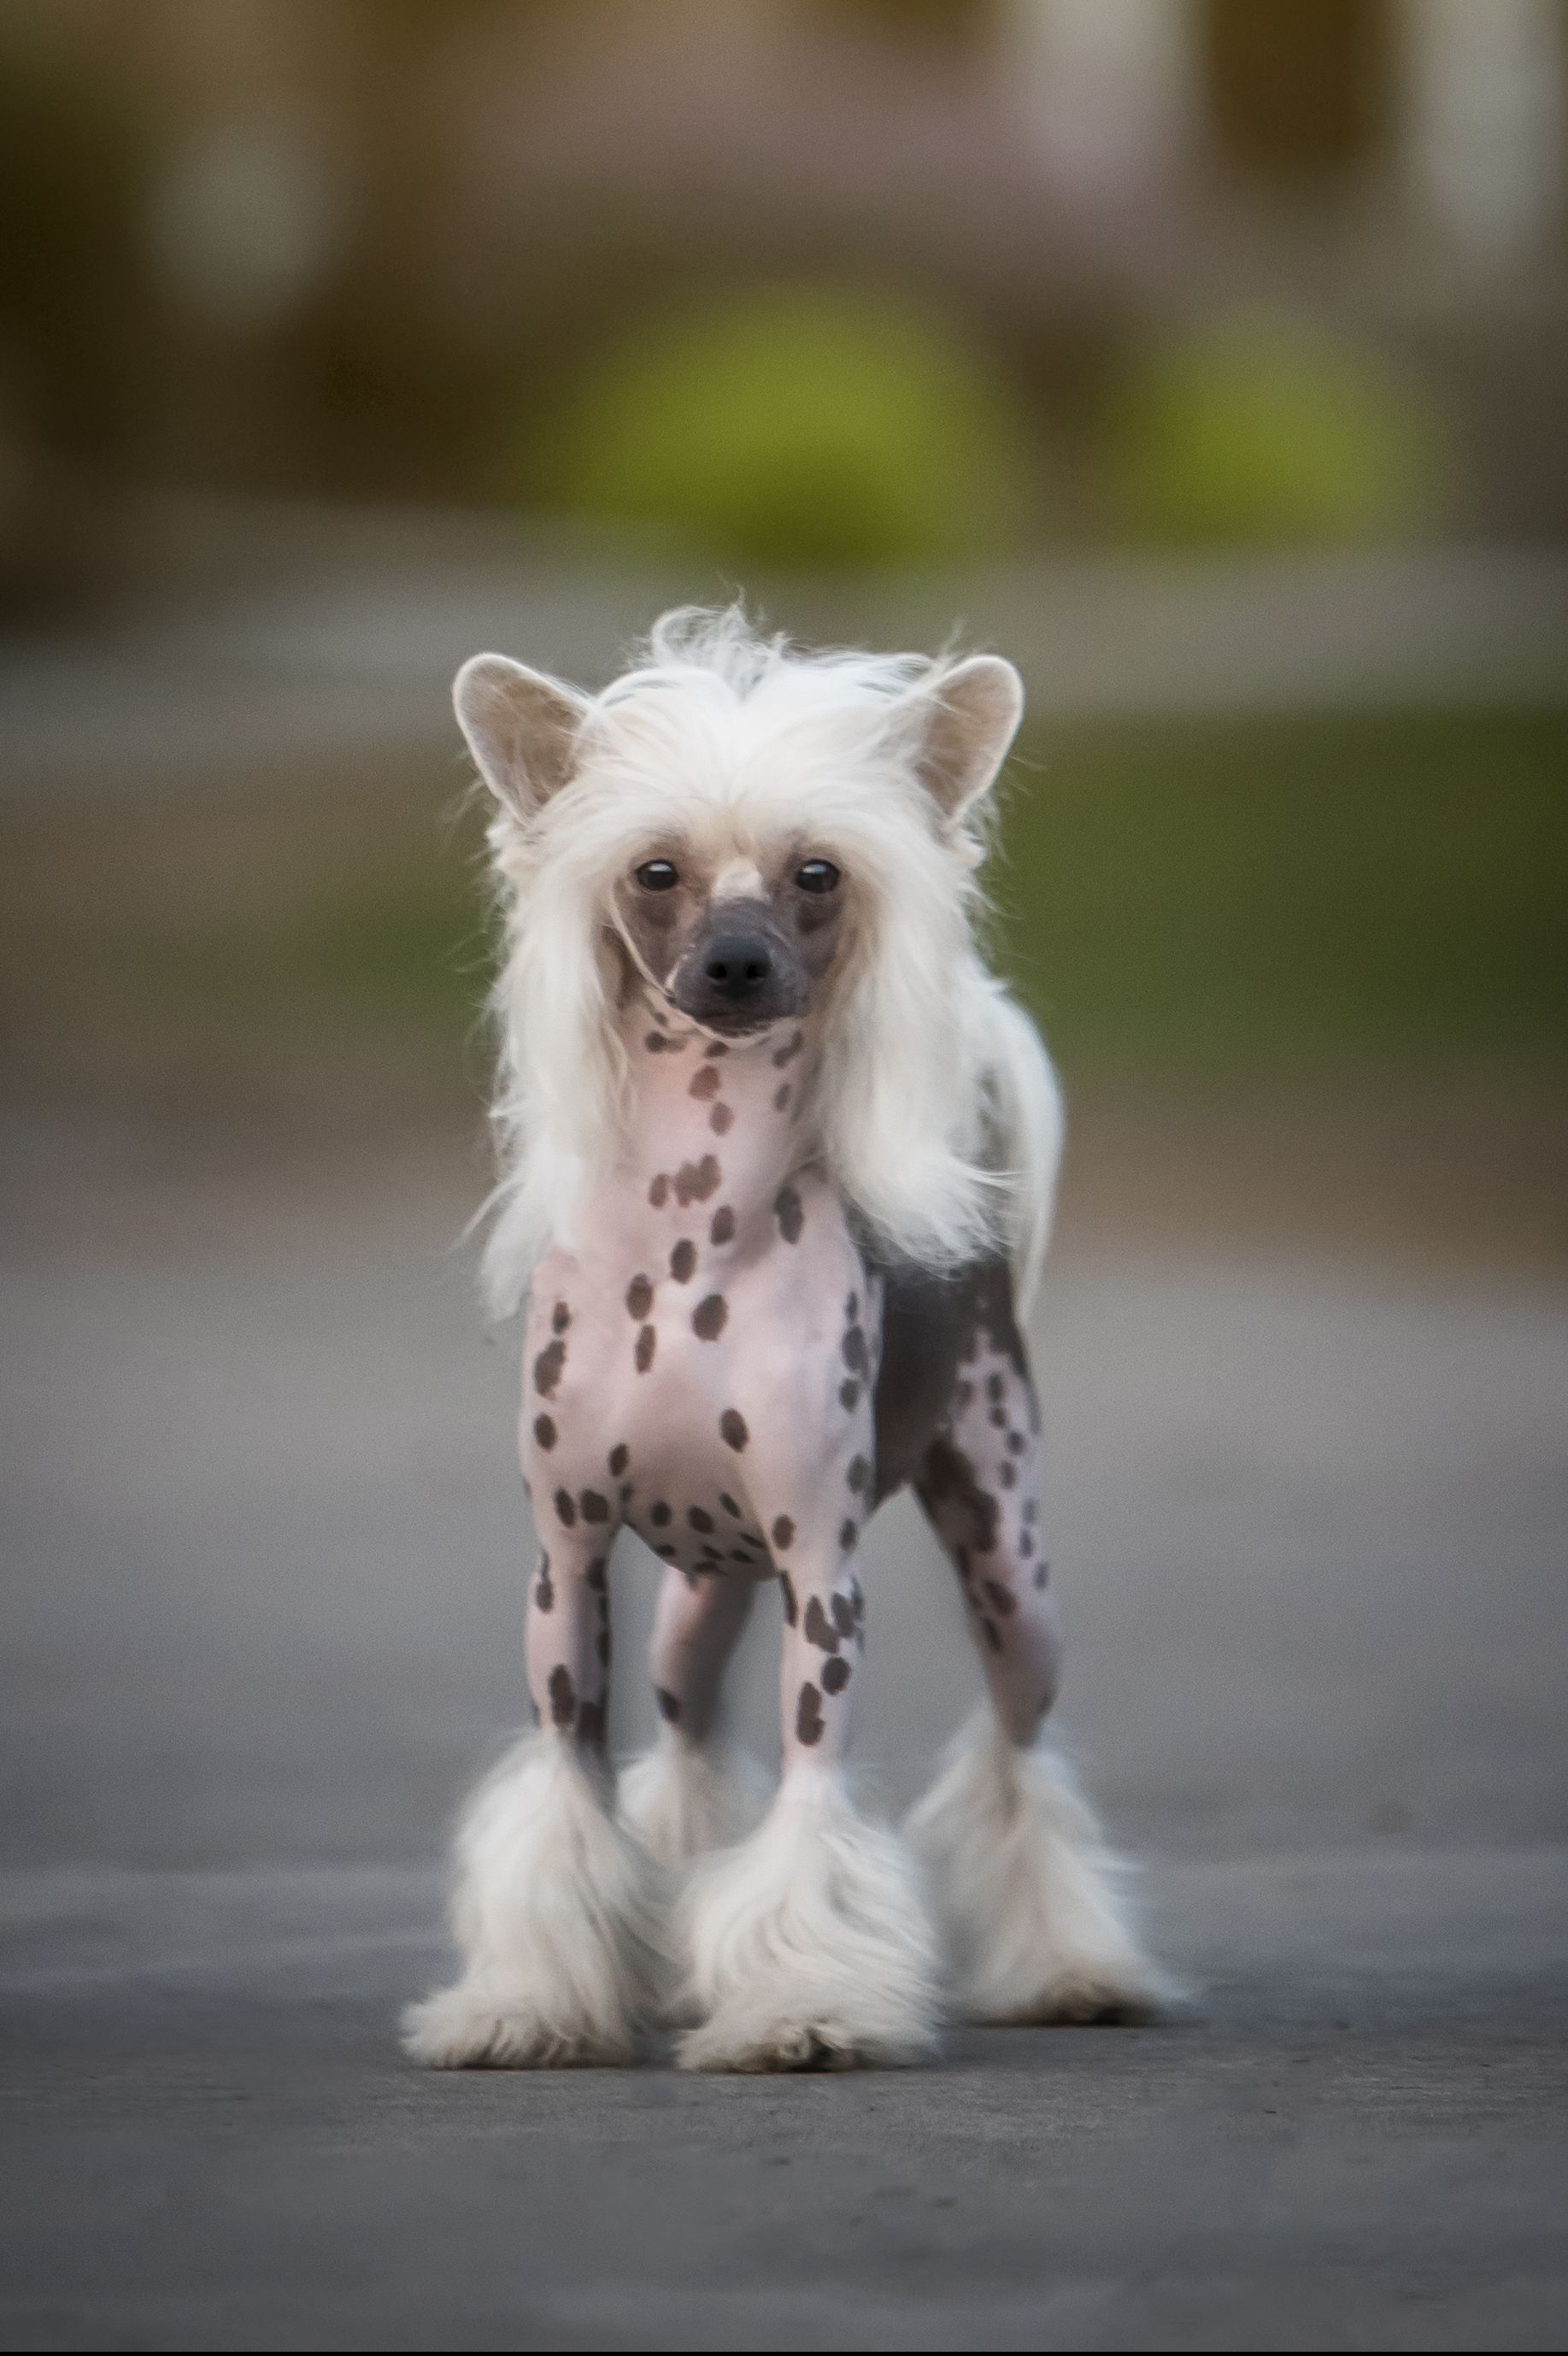 Dogs That Don't Shed - Chinese Crested Dog